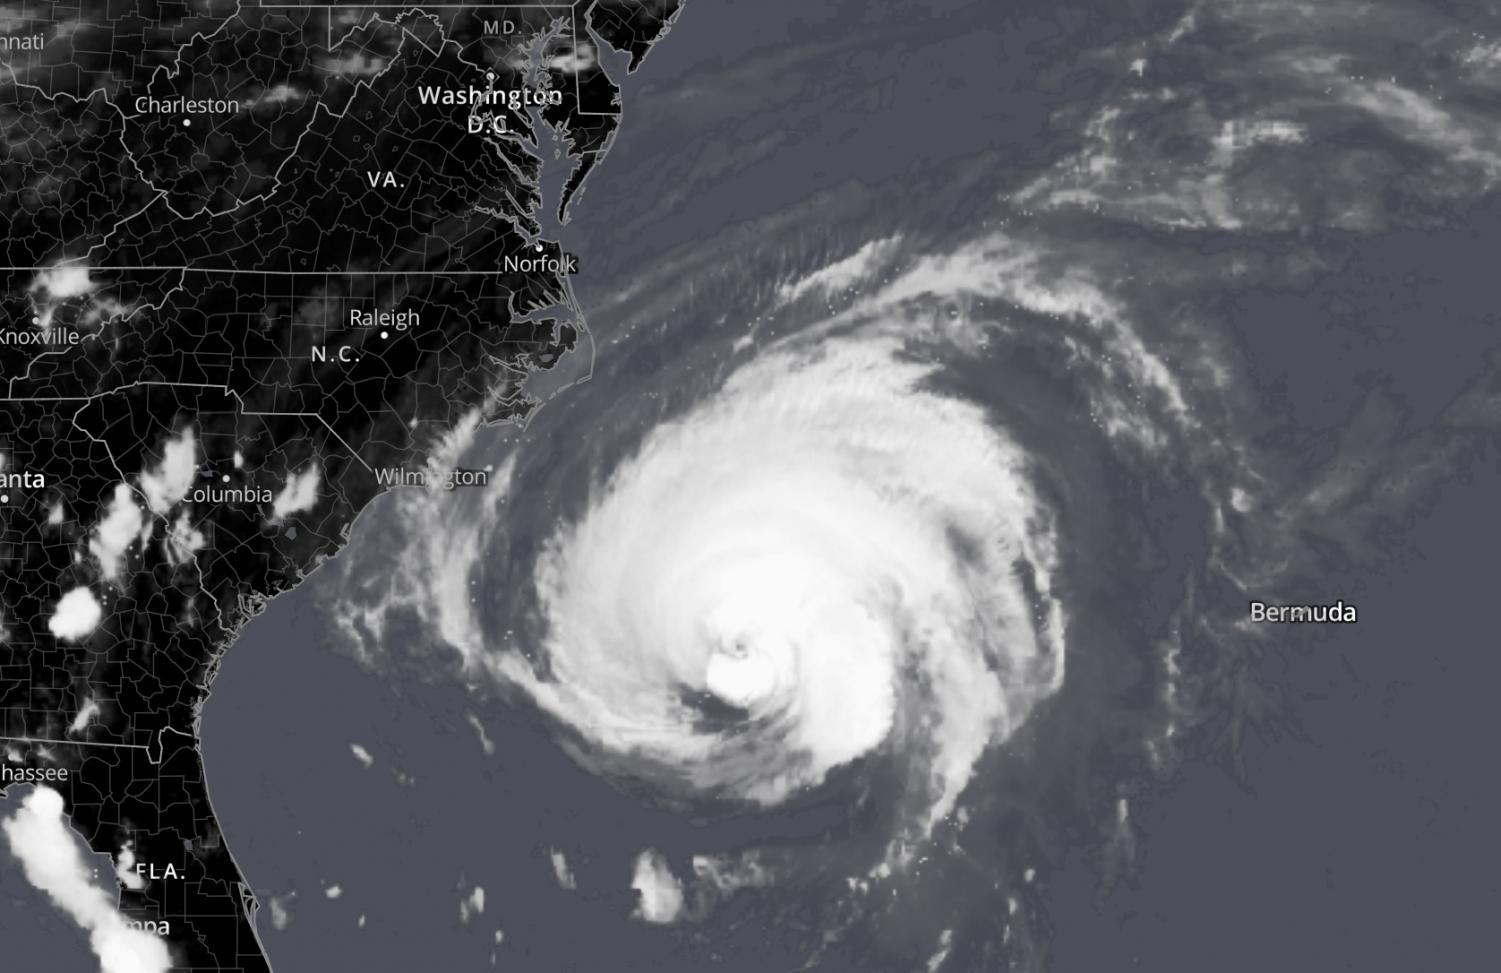 Satellite image showing Hurricane Florence approaching the East Coast.